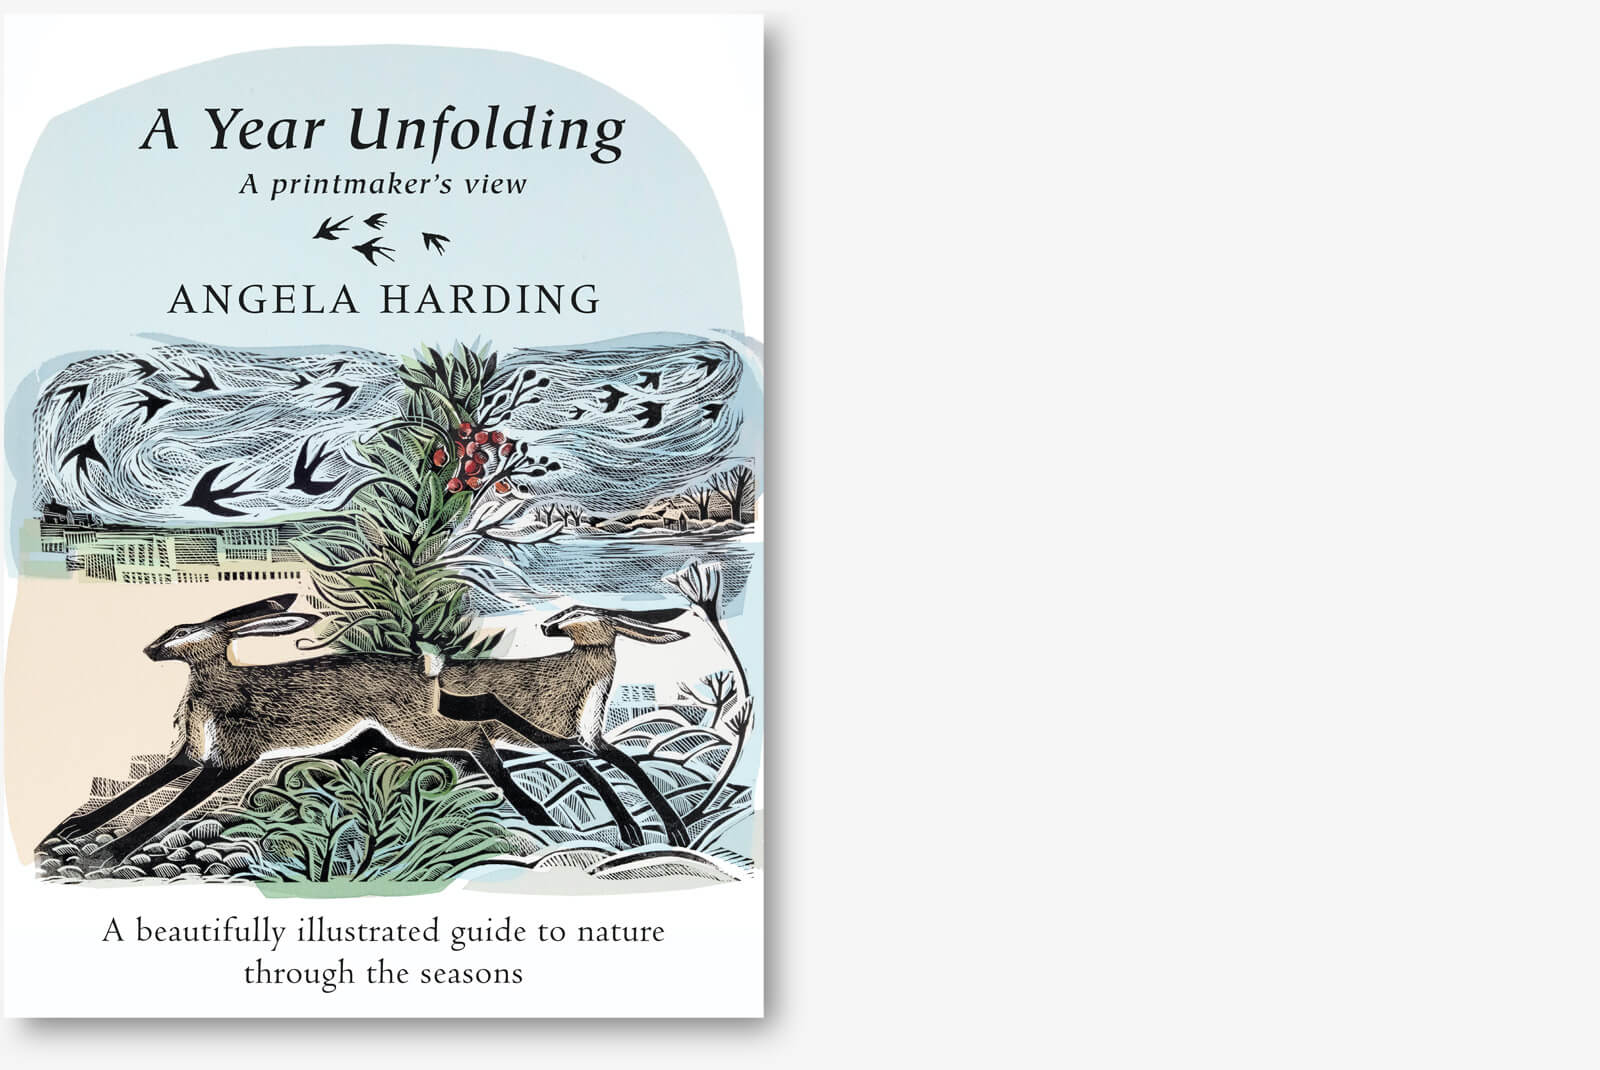 A Year Unfolding book by Angela Harding